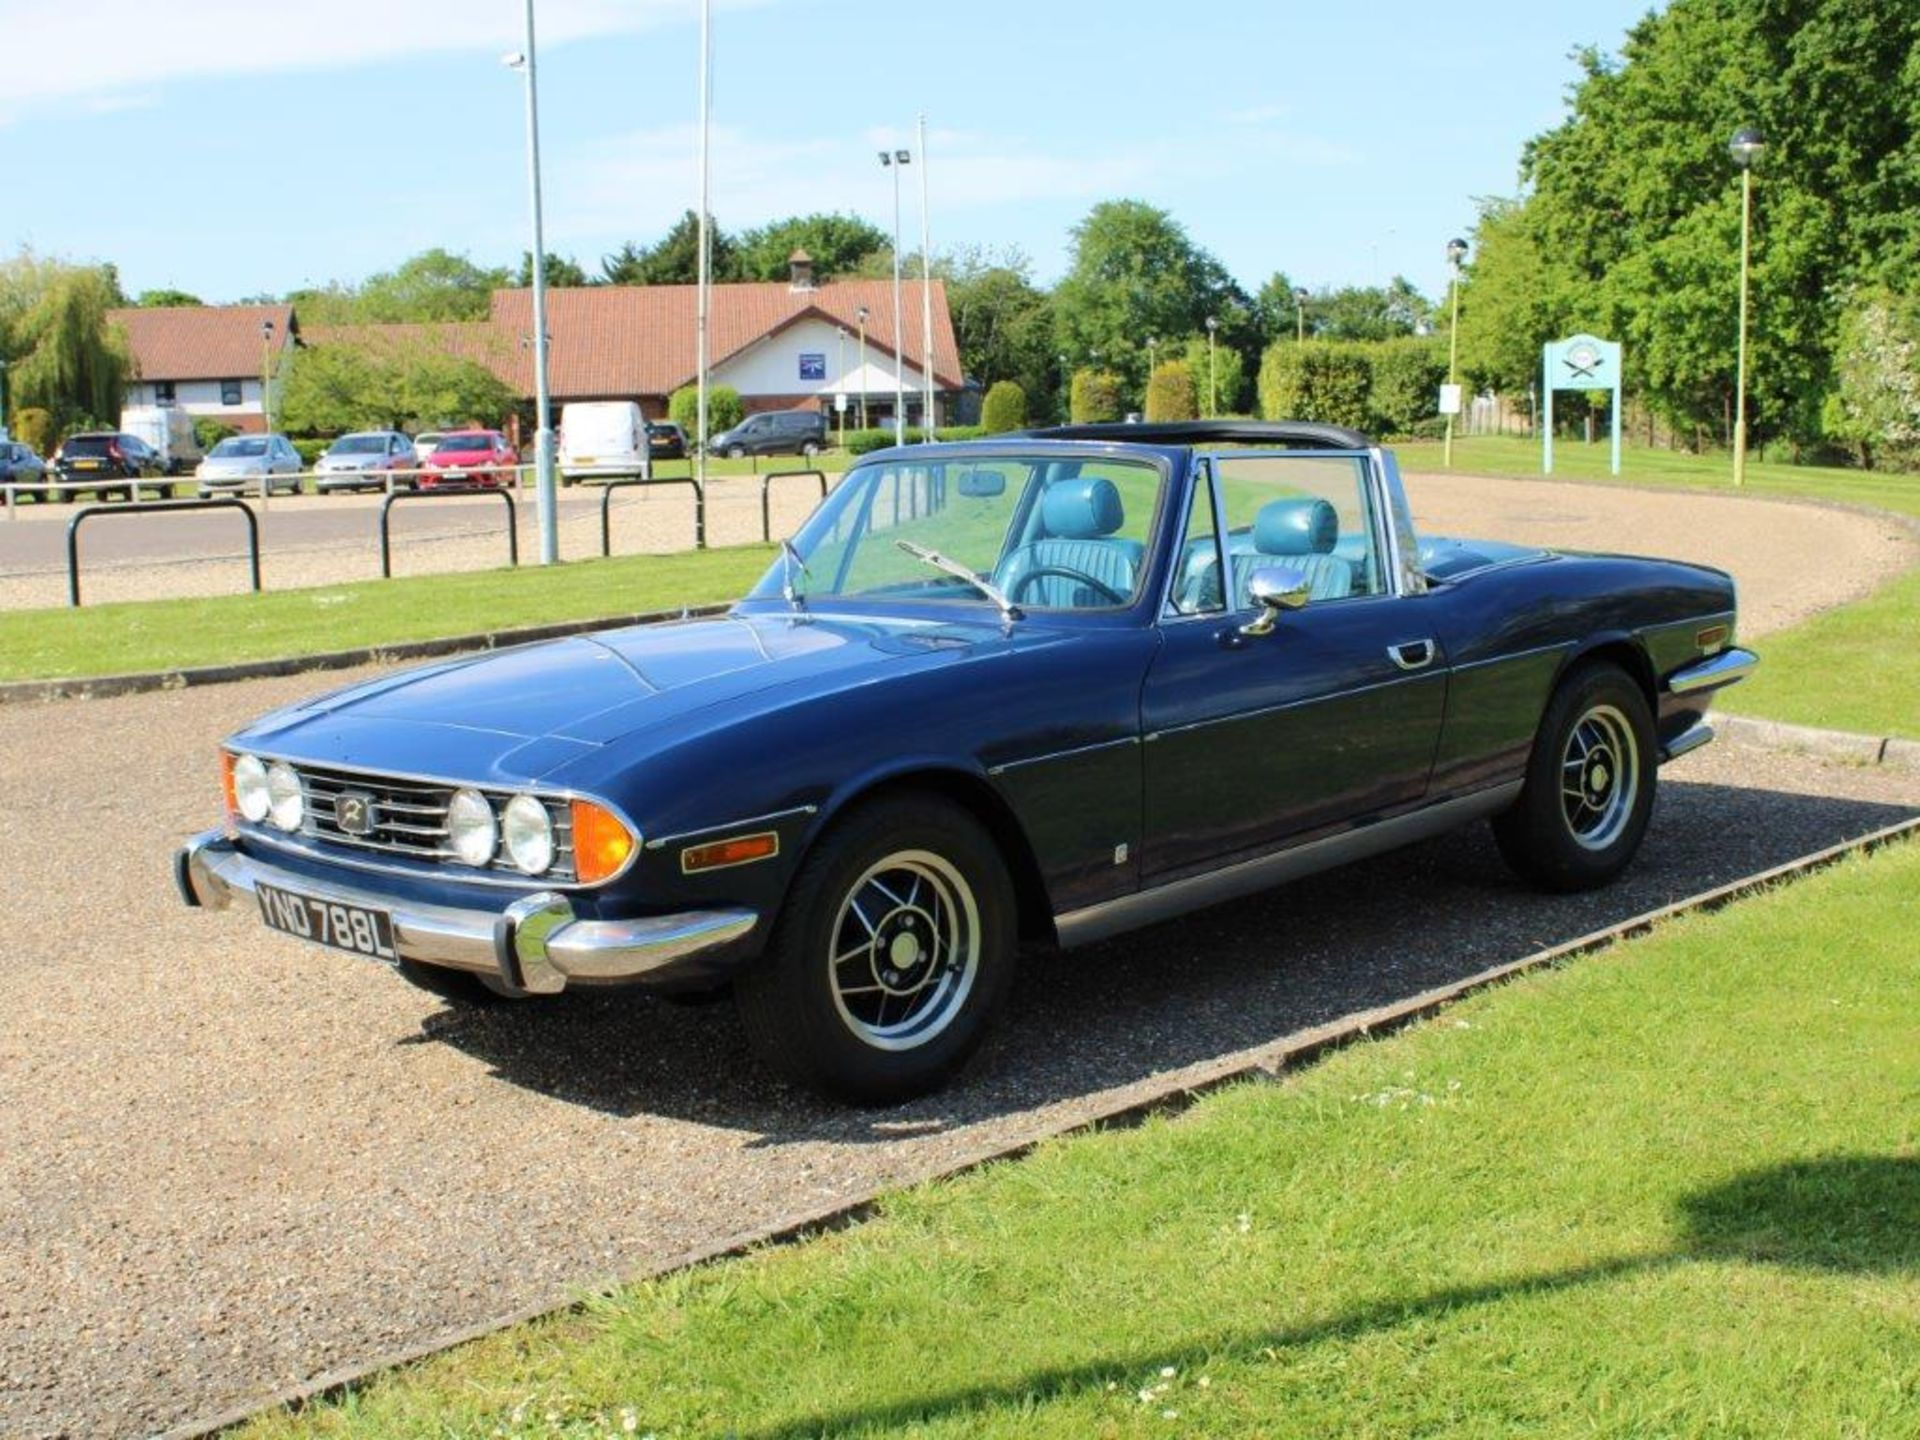 1973 Triumph Stag 3.0 LHD - Image 3 of 28